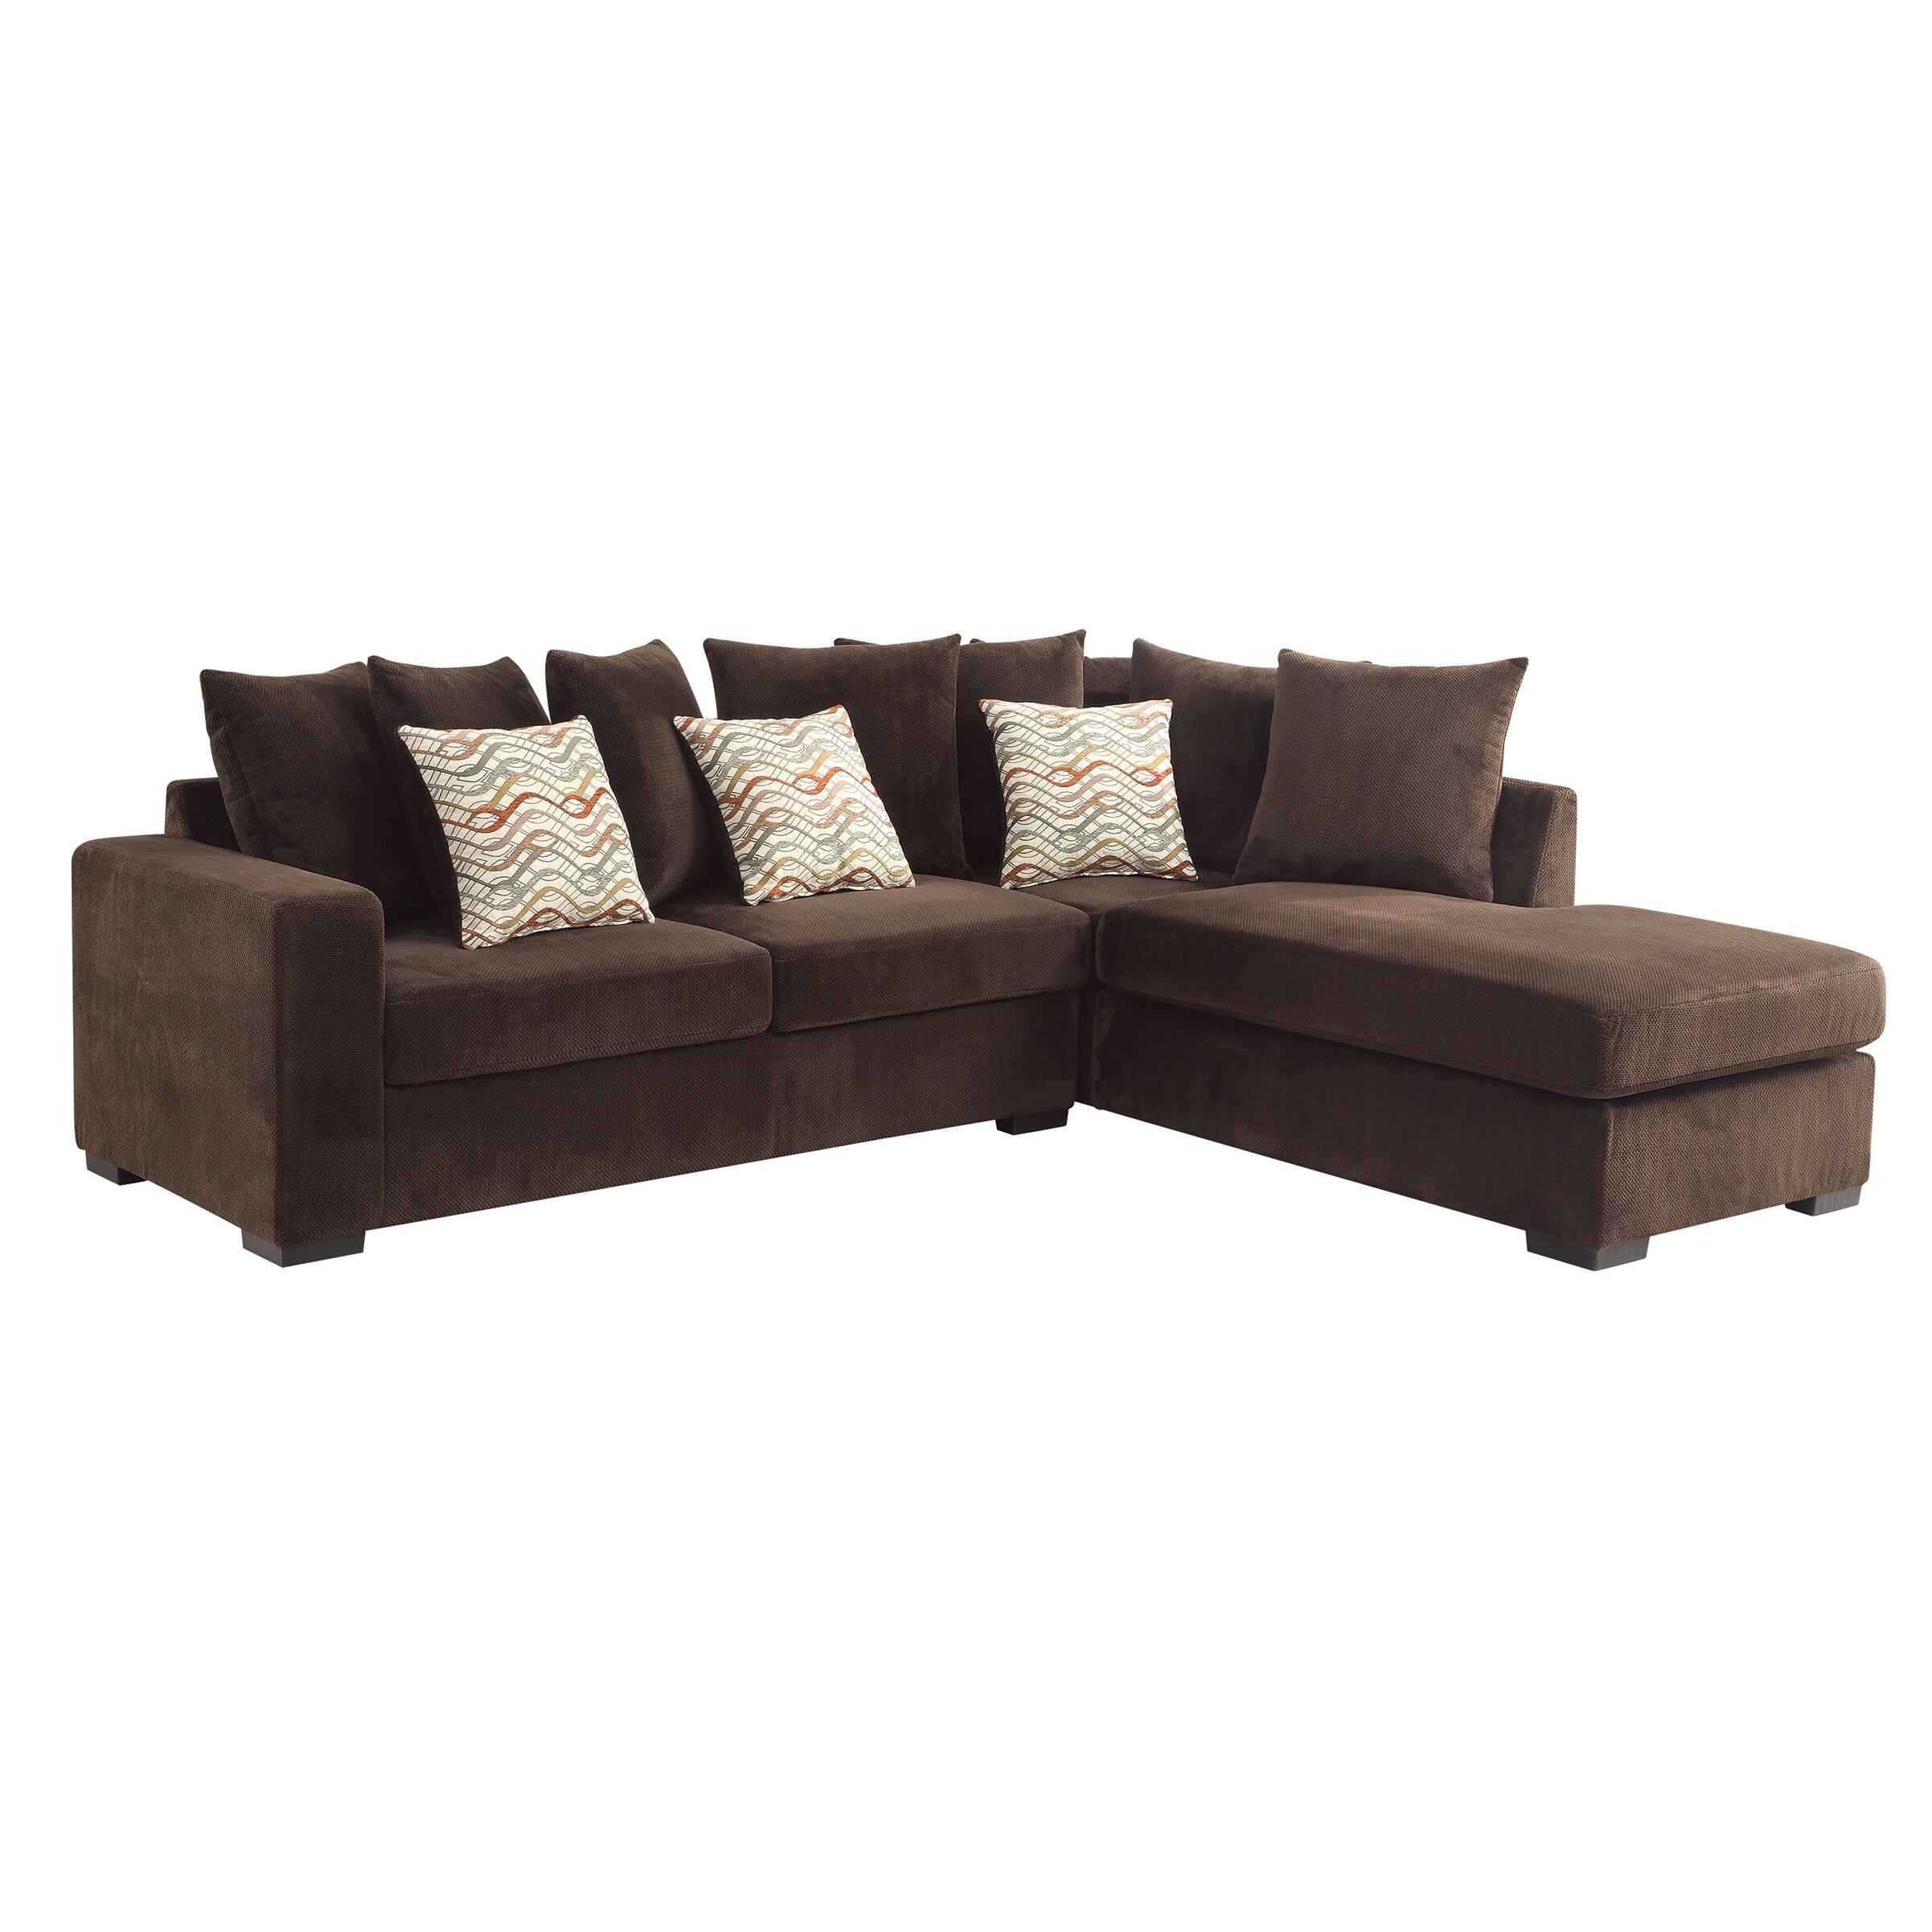 Wildon home olson reversible chaise sectional reviews for Albany saturn sectional sofa chaise